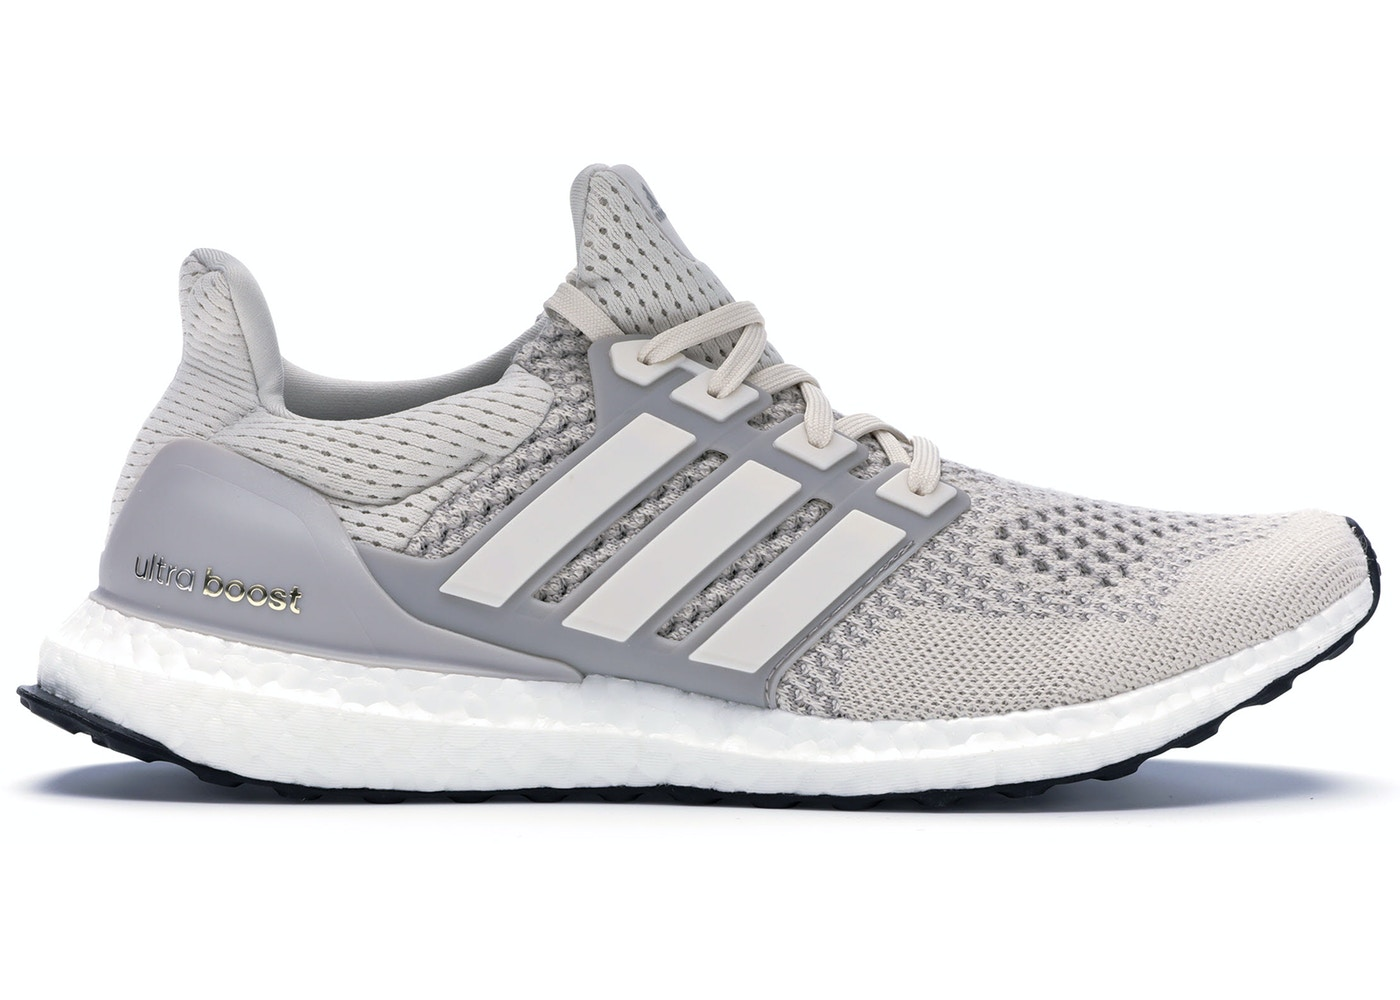 891970acd Buy adidas Ultra Boost Shoes   Deadstock Sneakers